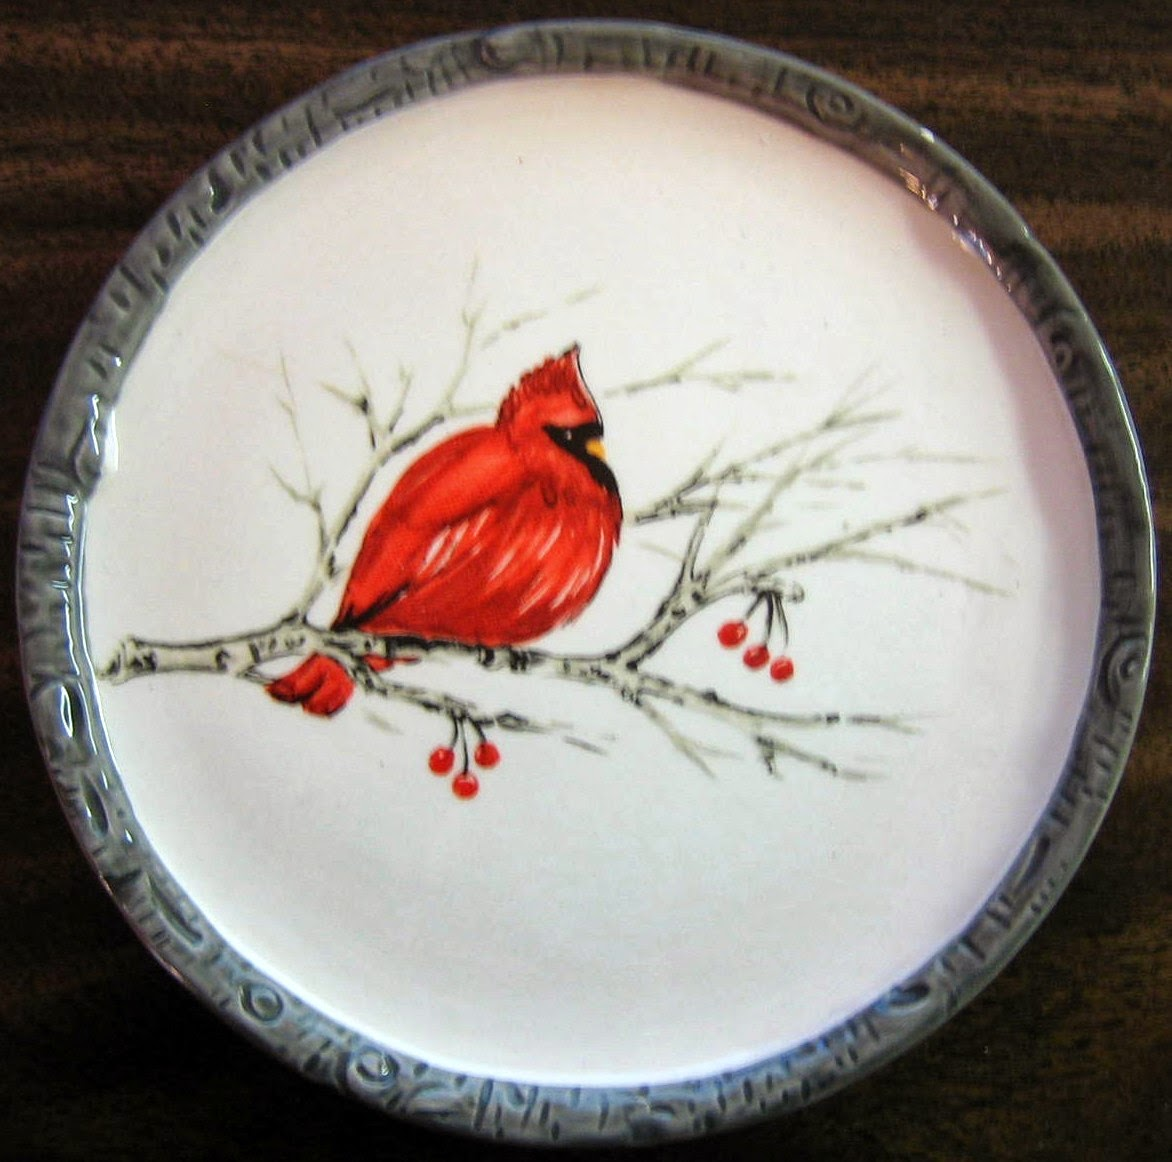 http://www.decorativedishes.net/faux-birch-edge-cardinal-bird-on-branch-decorative-small-plate/